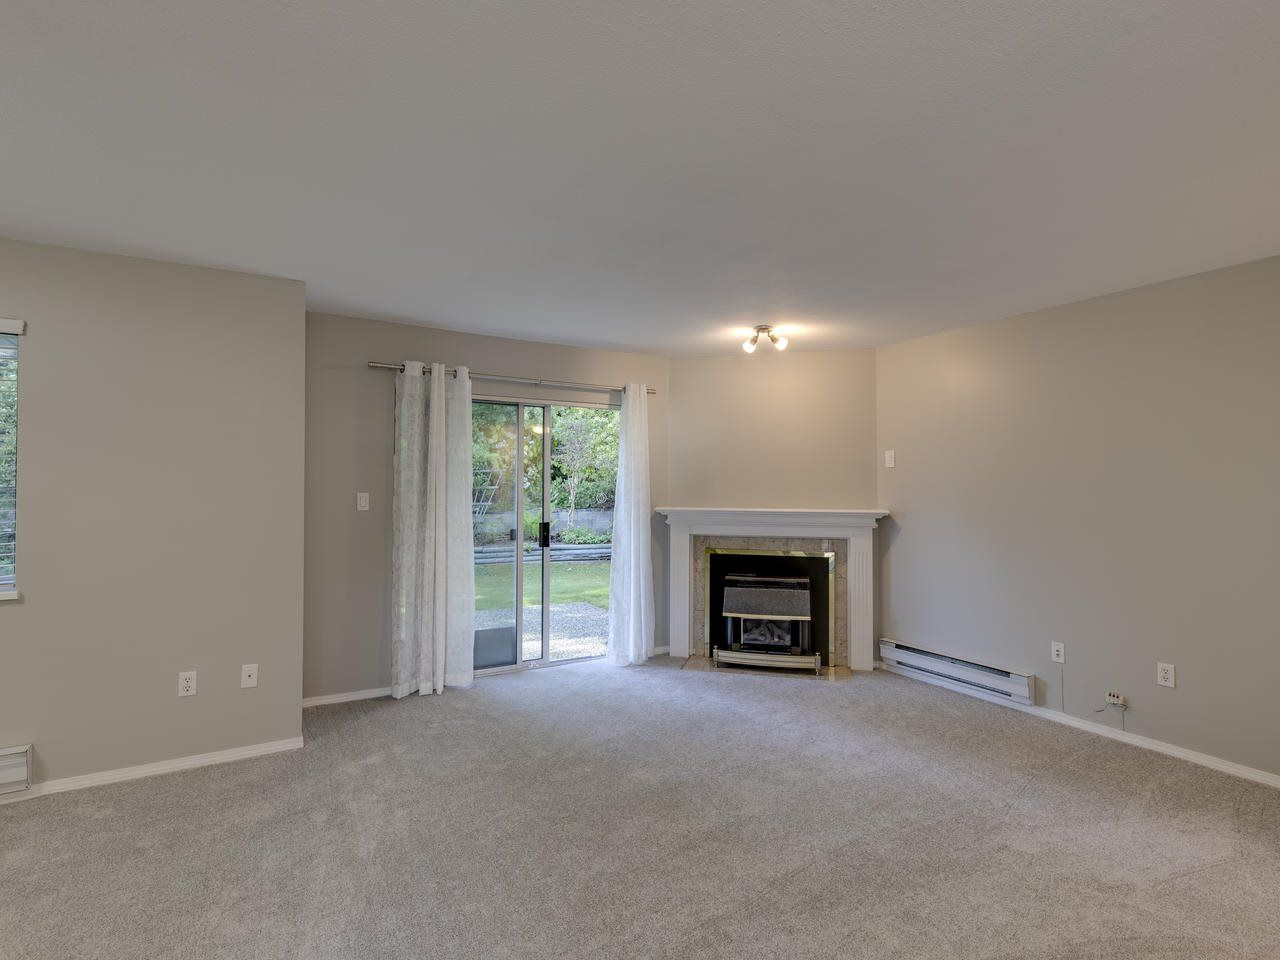 """Photo 14: Photos: 127 22555 116 Avenue in Maple Ridge: East Central Townhouse for sale in """"HILLSIDE"""" : MLS®# R2493046"""